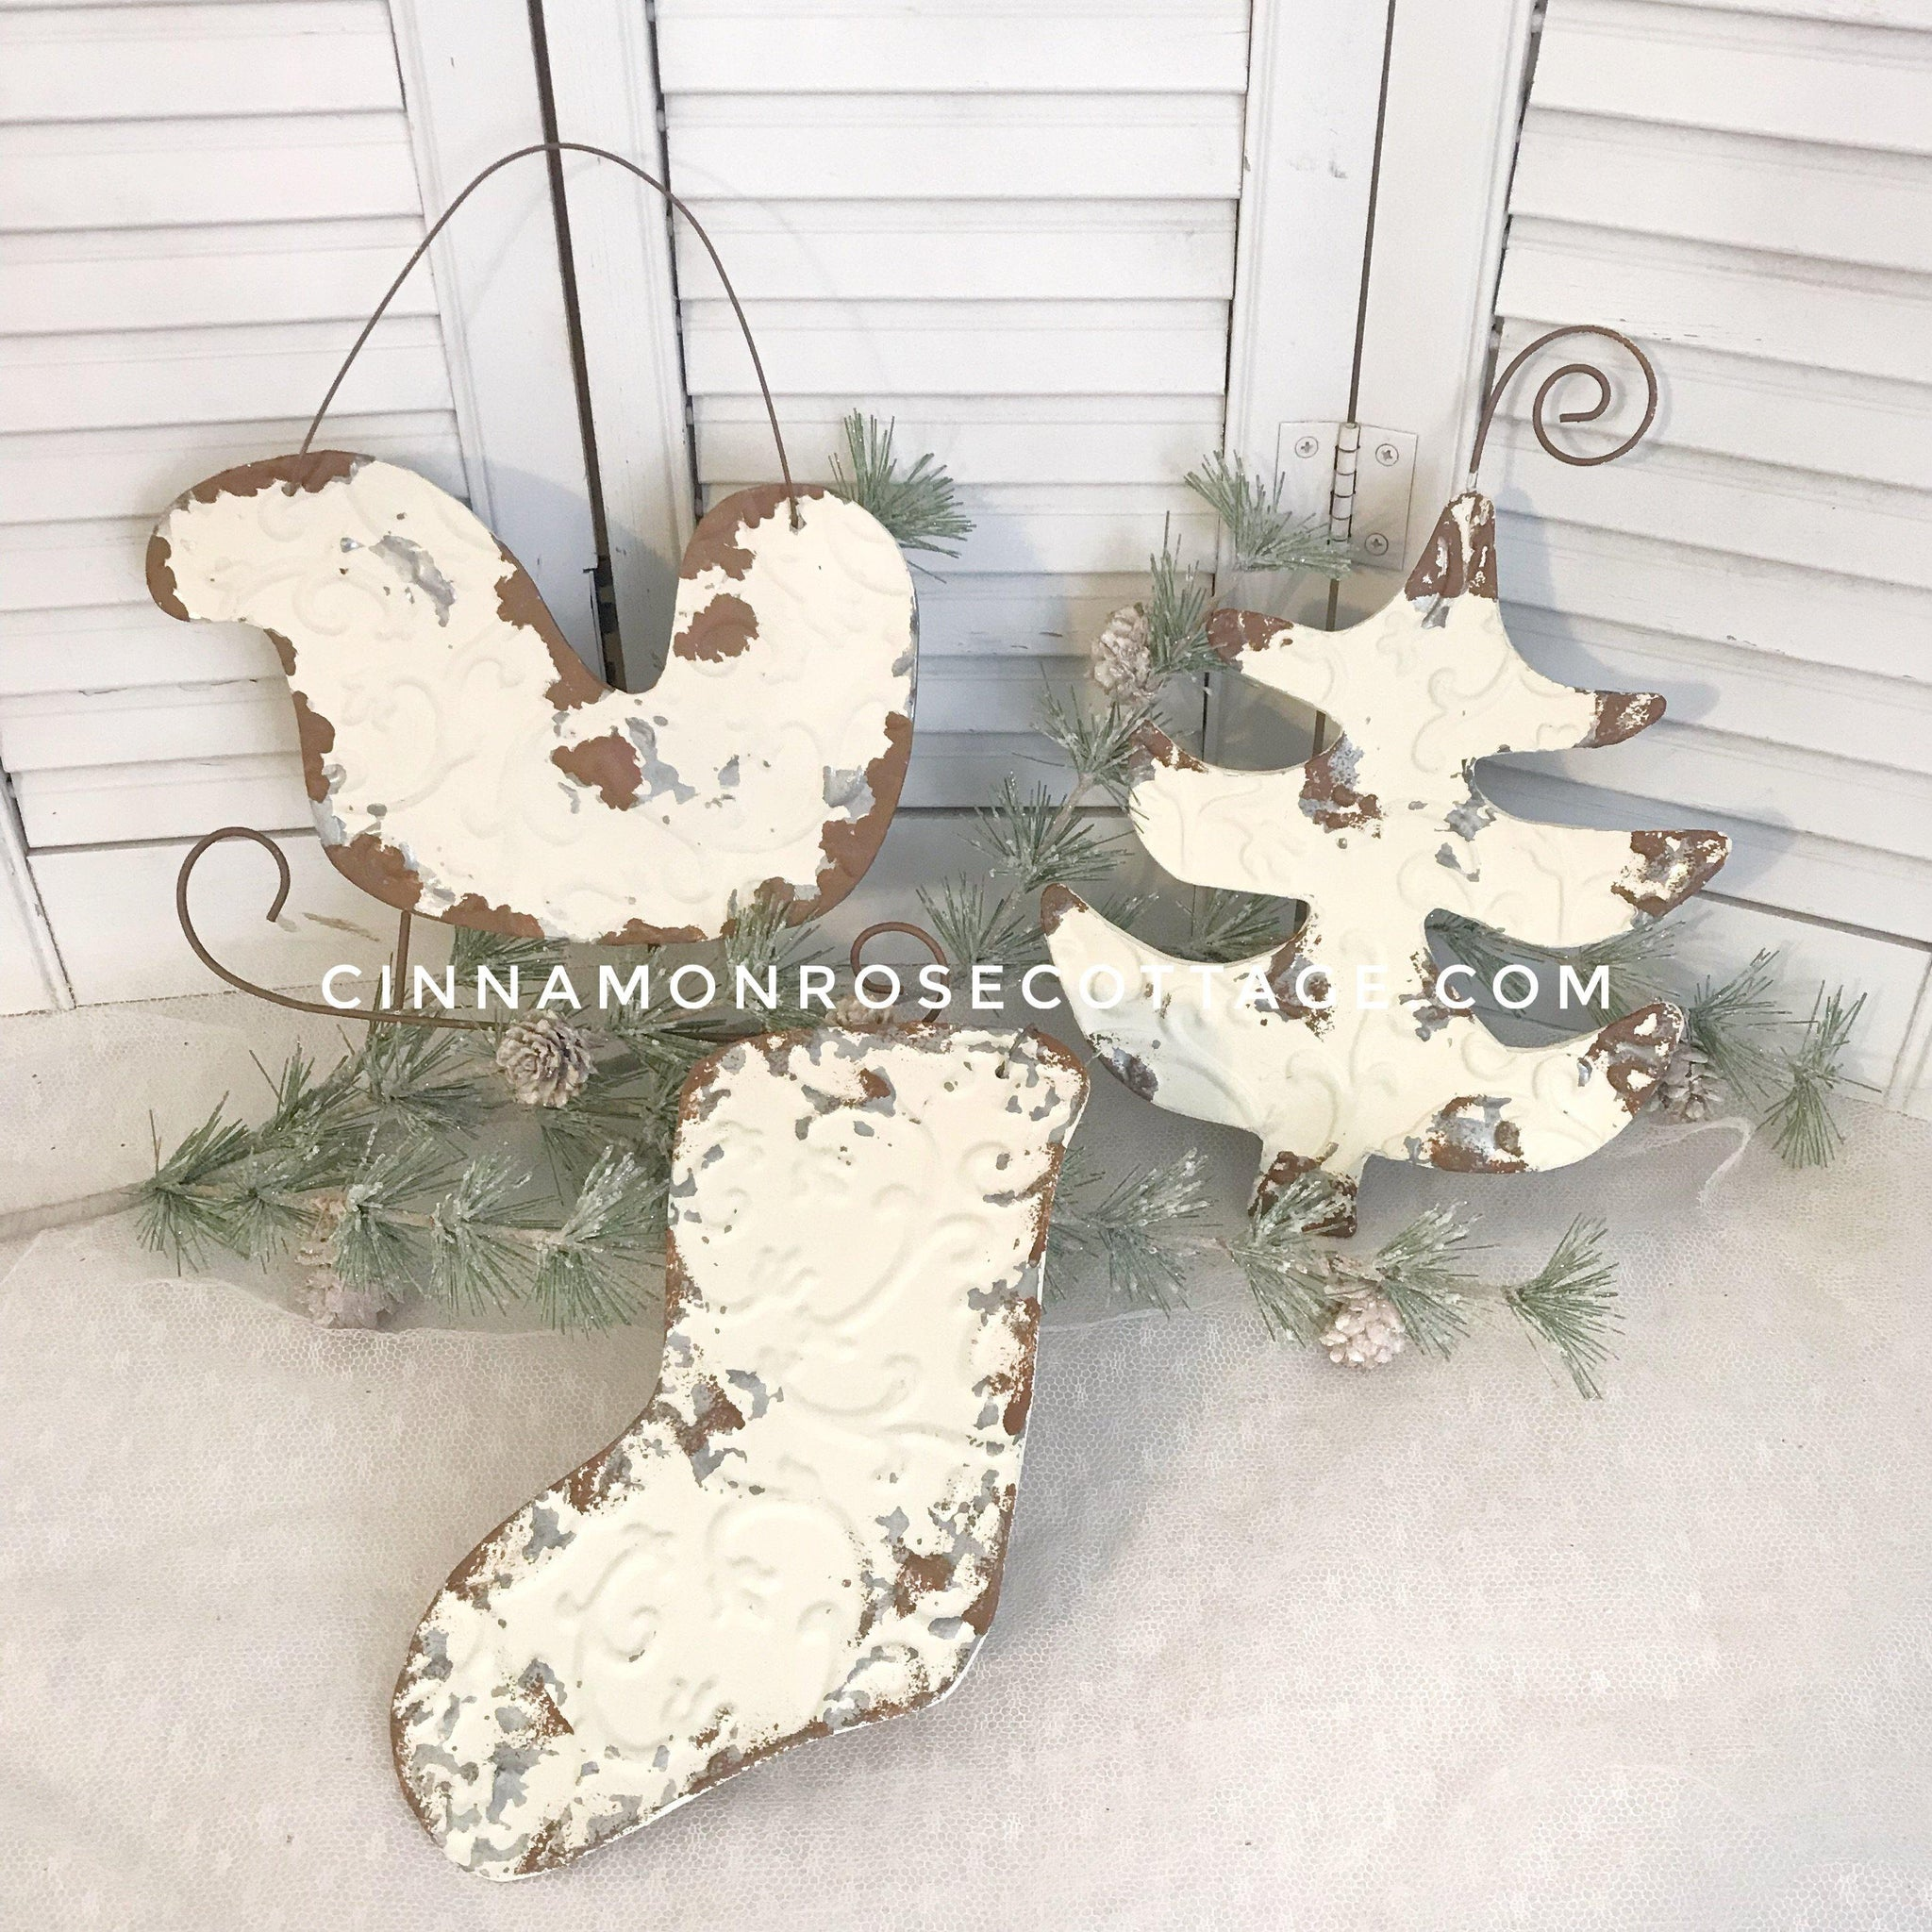 Cottage Inspired Set of 3 Large Distressed Galvanized Metal Christmas Ornaments Sale-Christmas-Cinnamon Rose Cottage